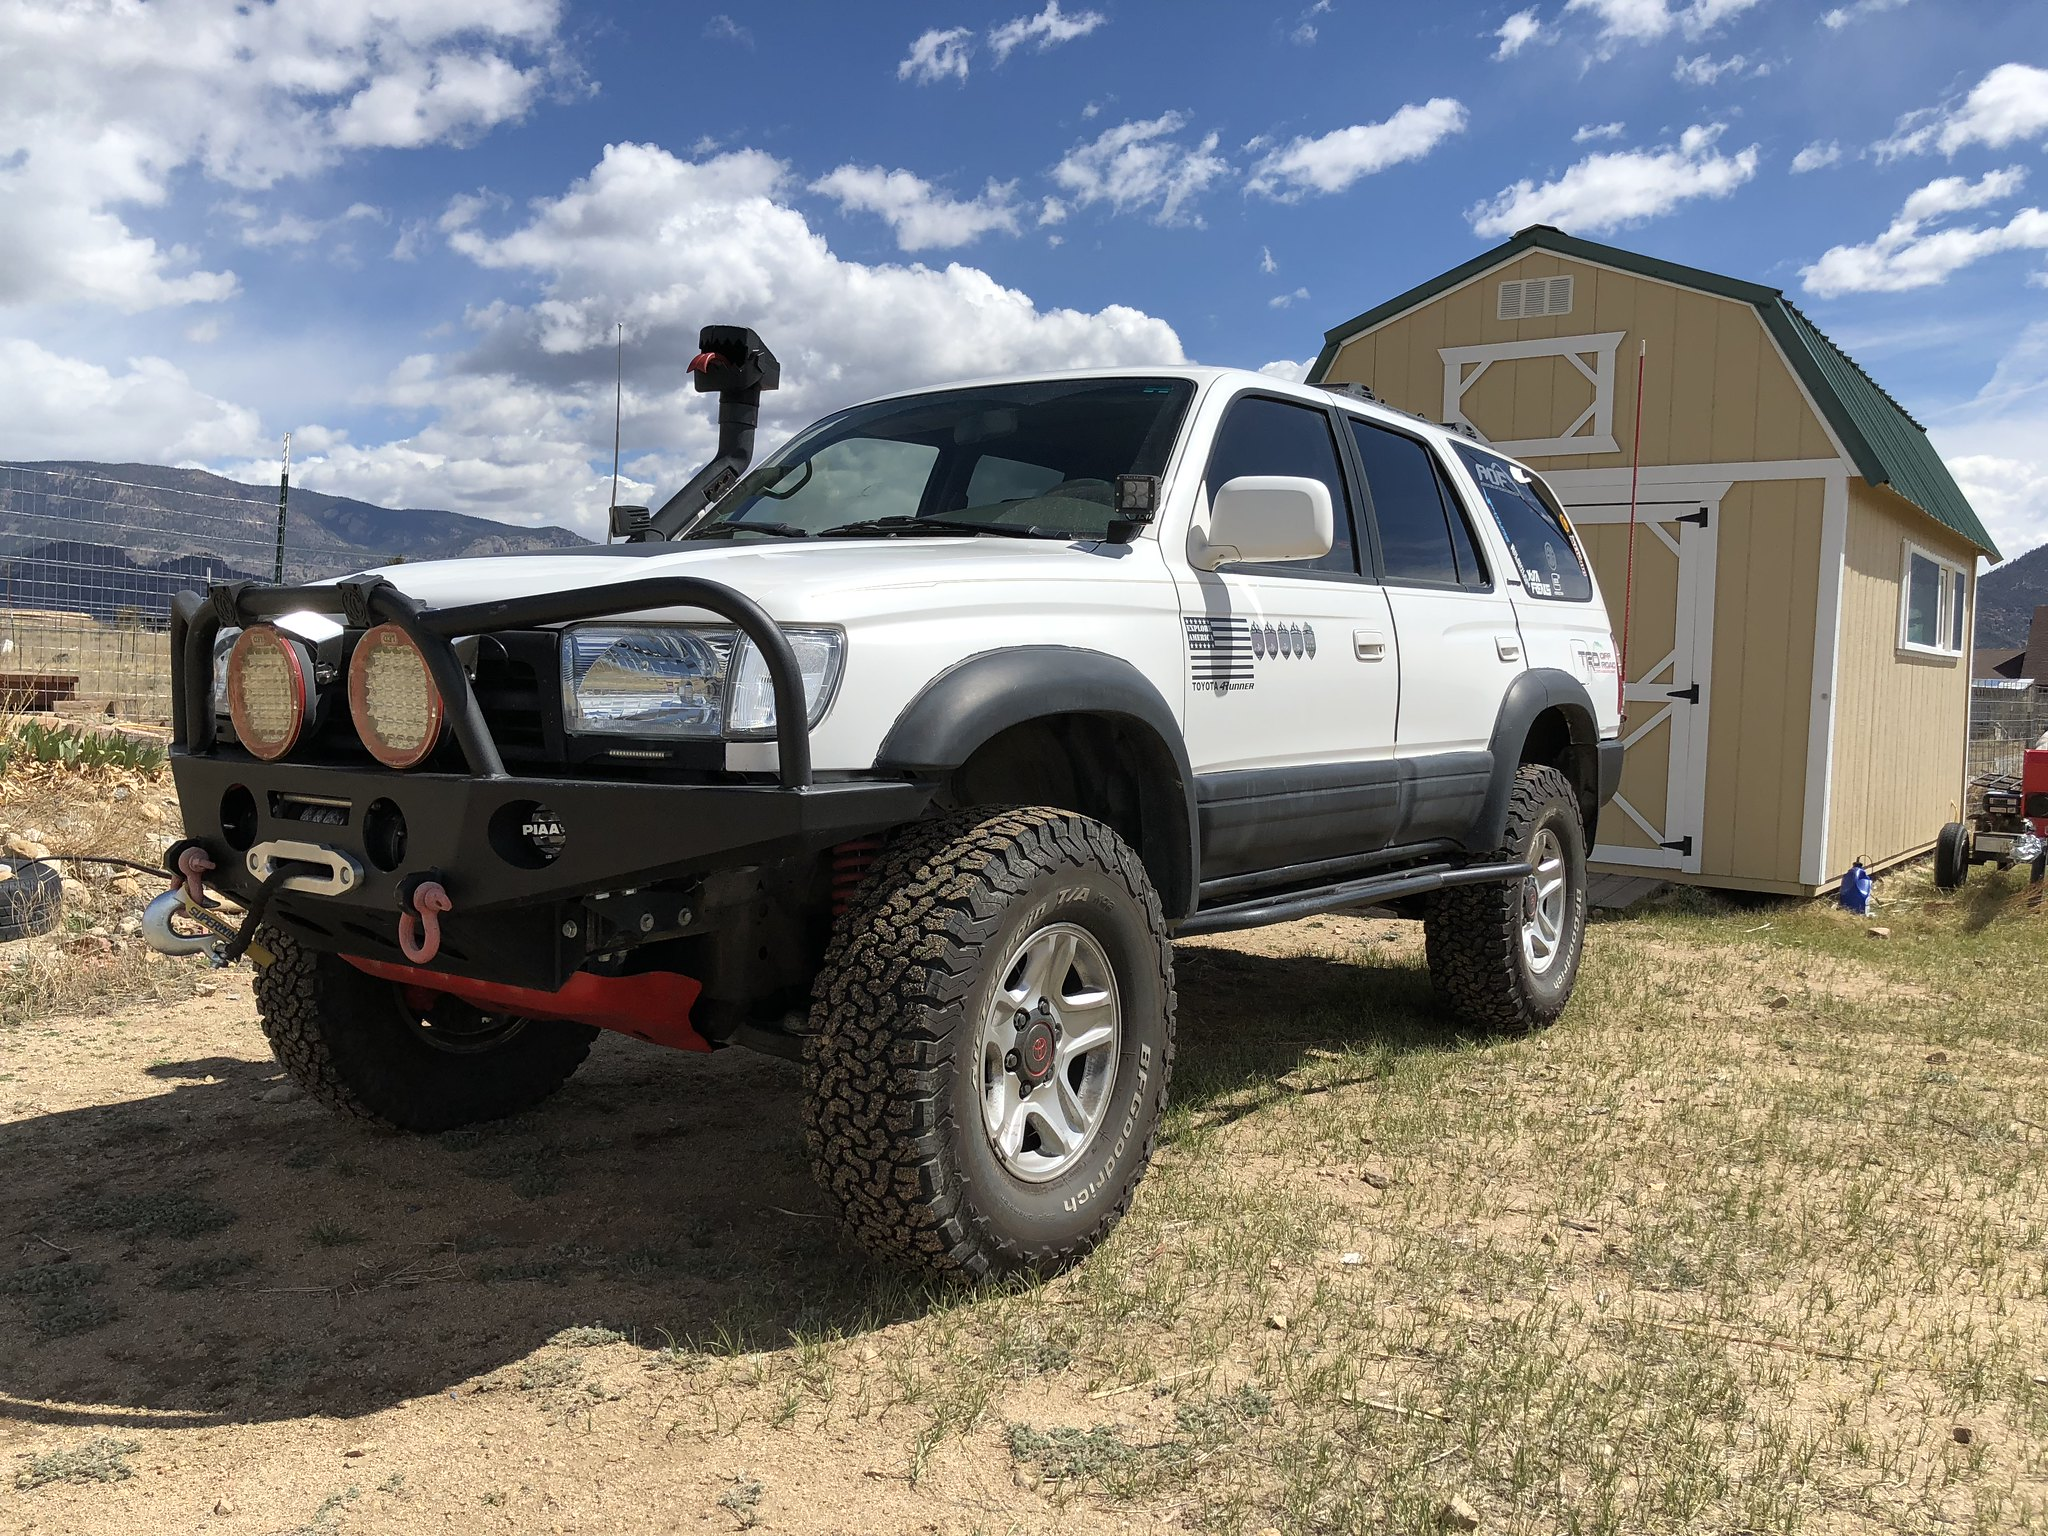 1996 Toyota 4runner Lifted